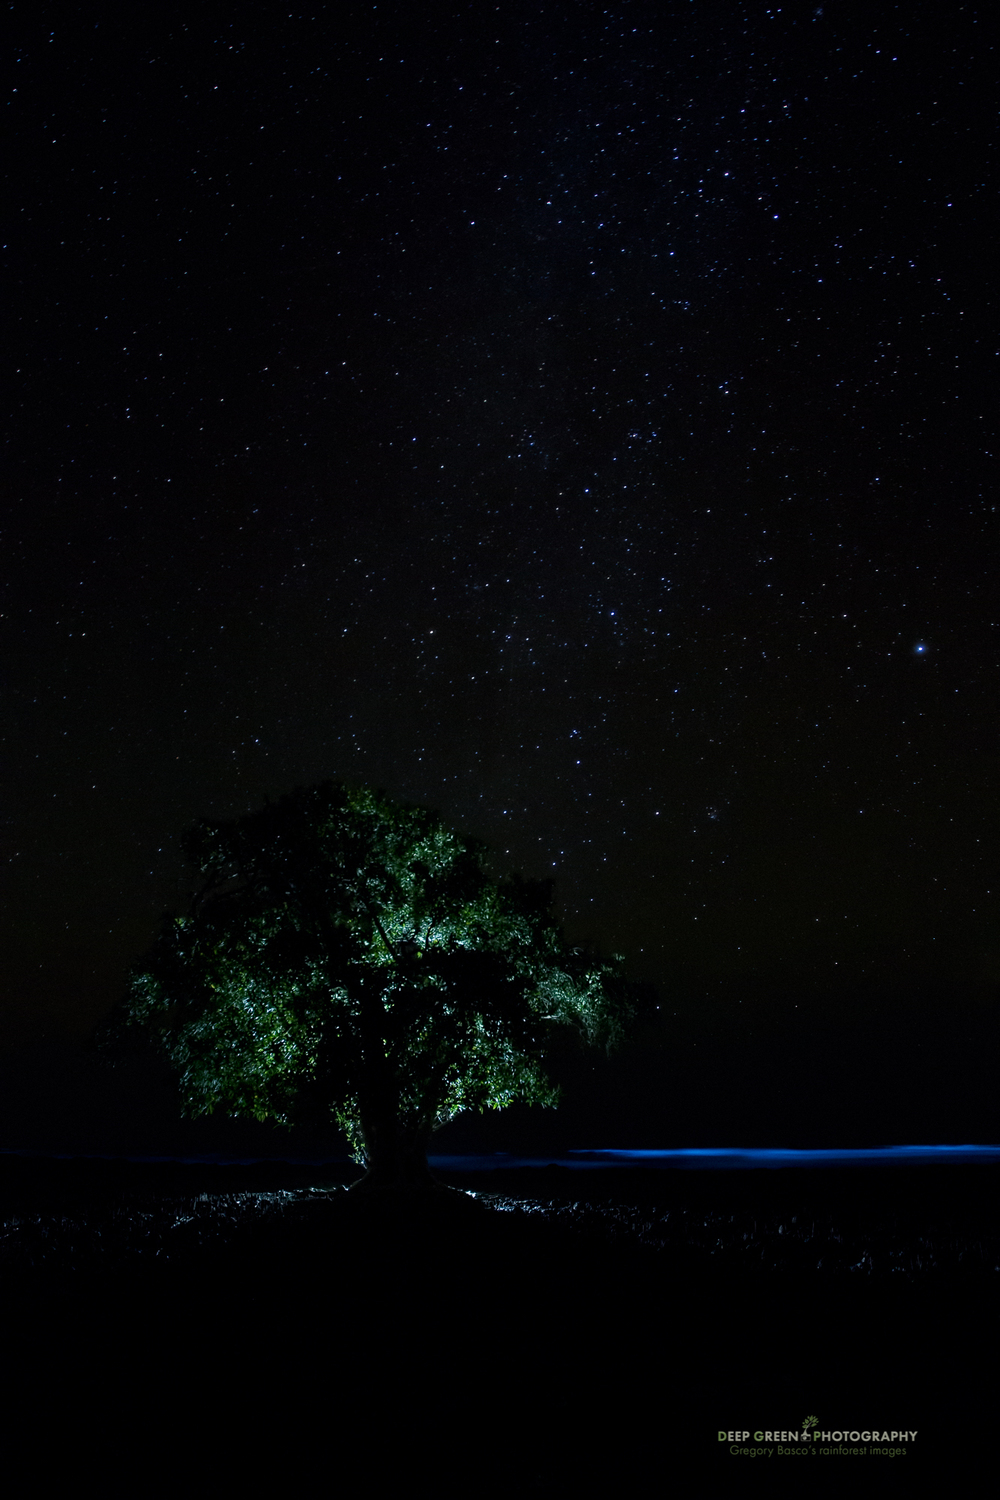 Mangrove tree and bioluminescent dinoflagellates in the Pacific Ocean near Cabo Blanco Refuge